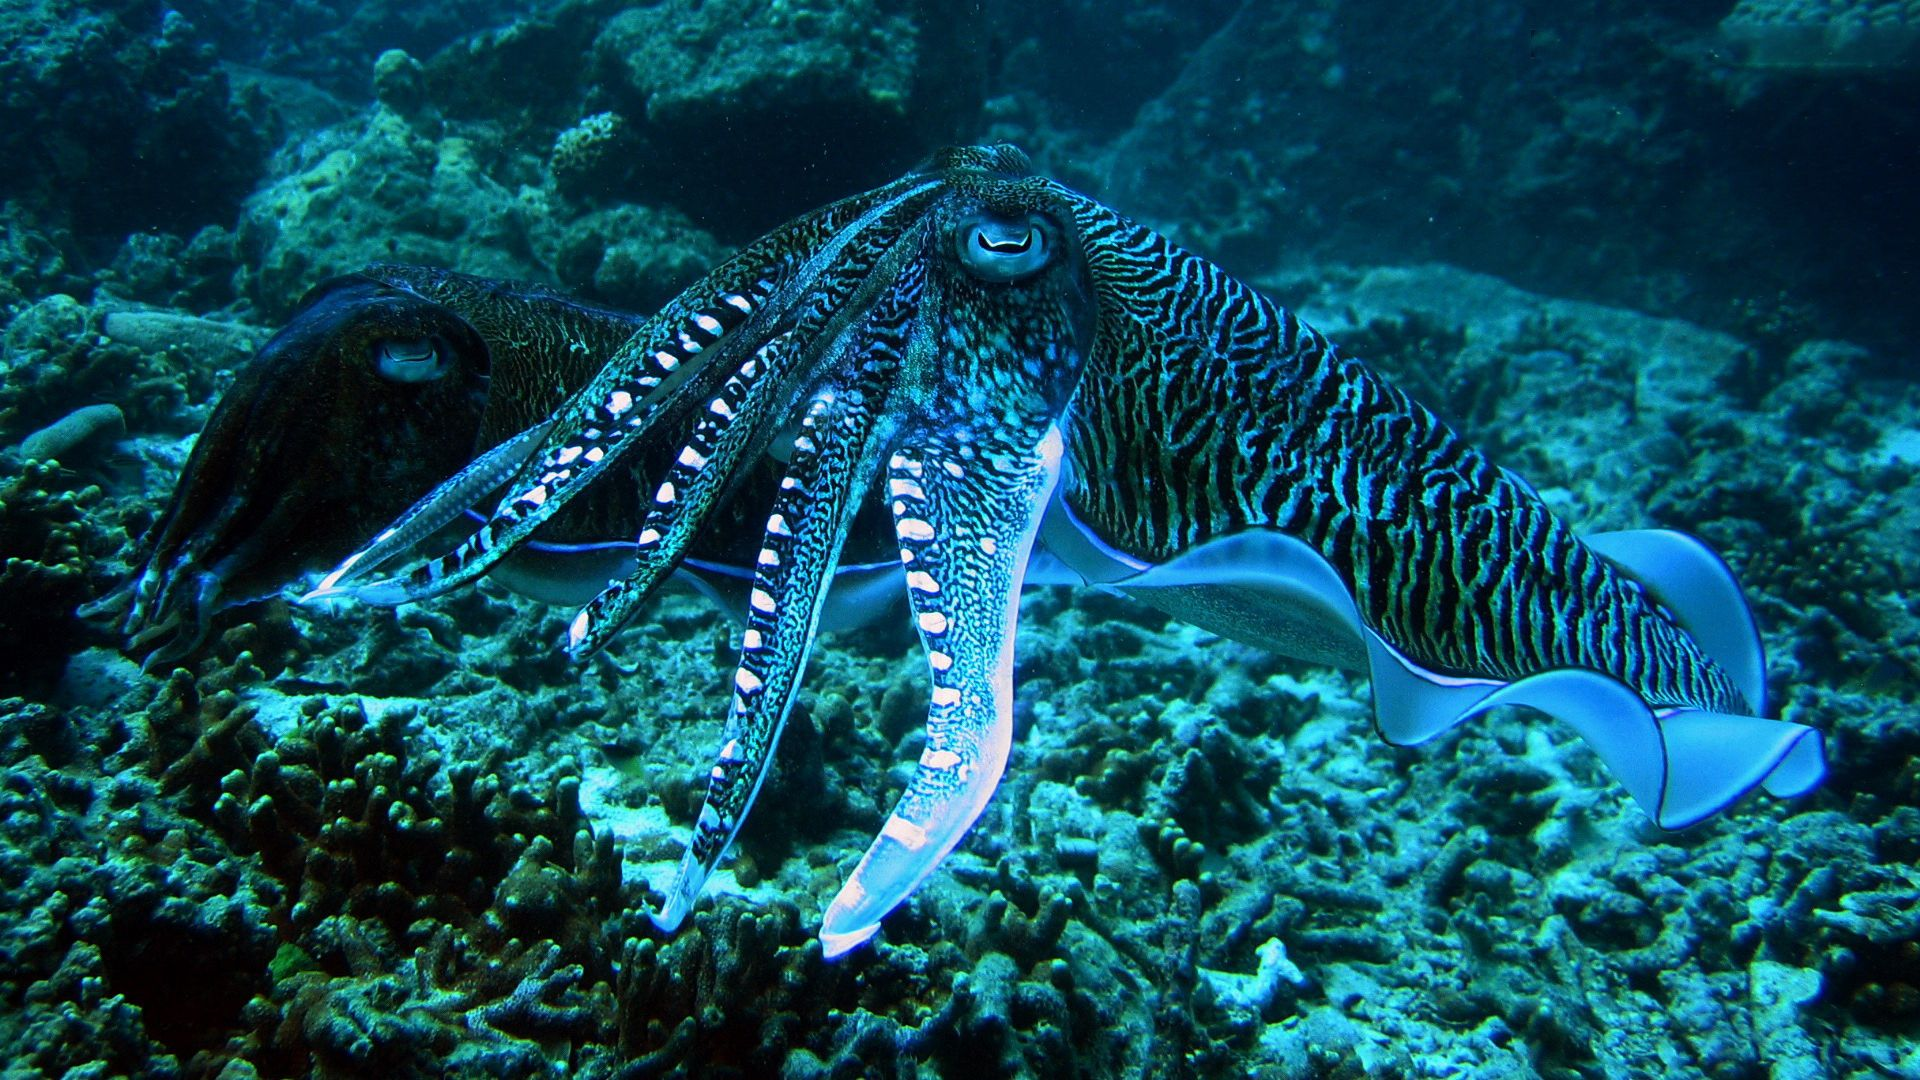 9 Cuttlefish Hd Wallpapers Backgrounds Wallpaper Abyss Octopus Octopus Wallpaper Cuttlefish Art